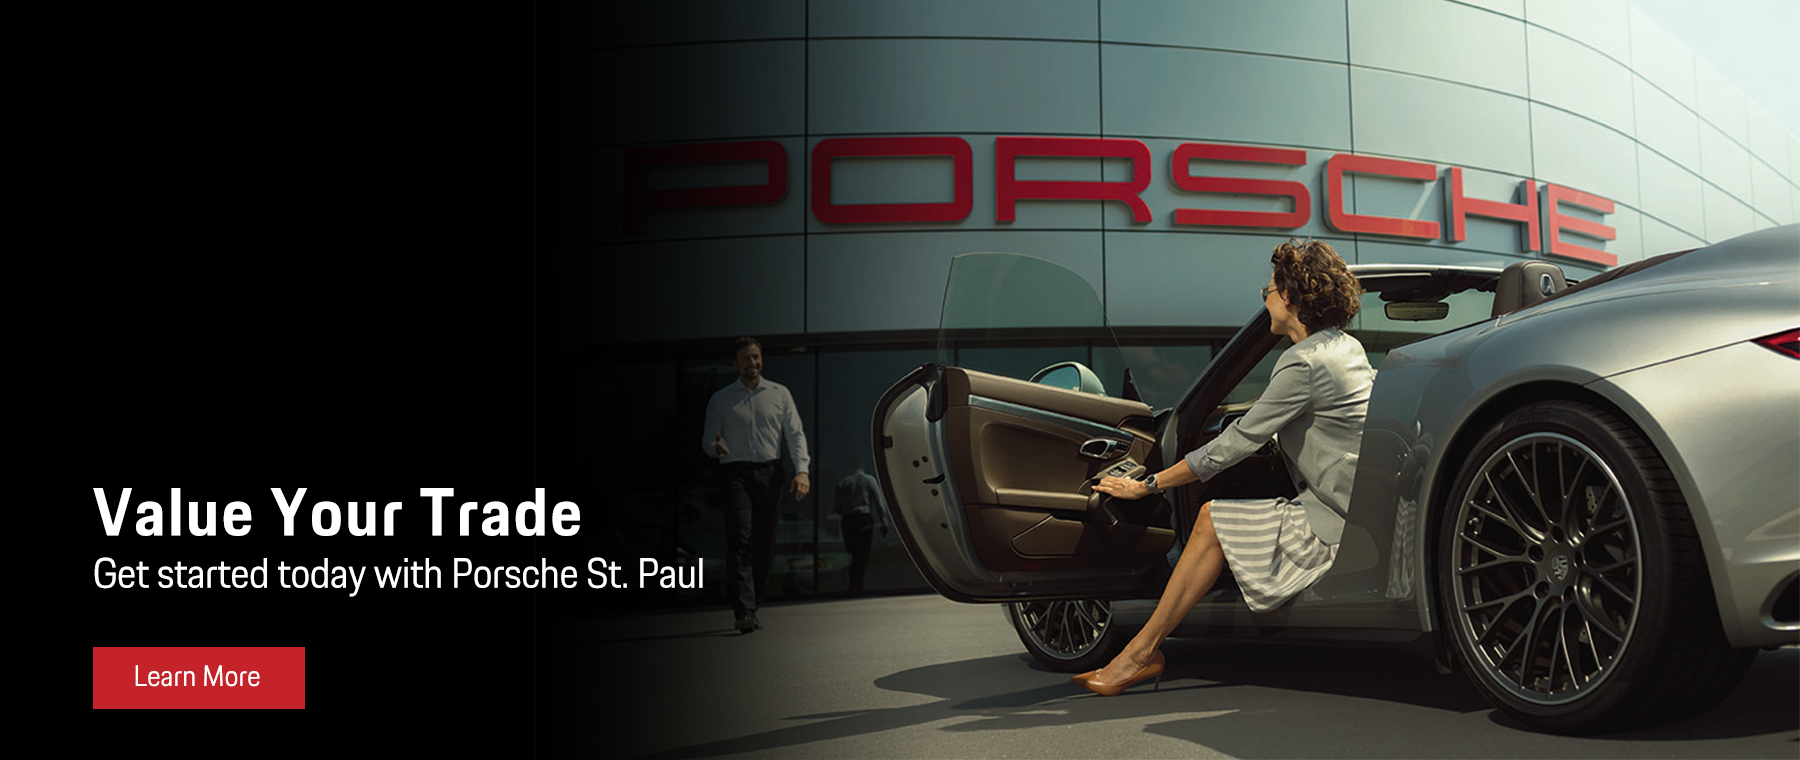 Value Your Trade at Porsche St. Paul